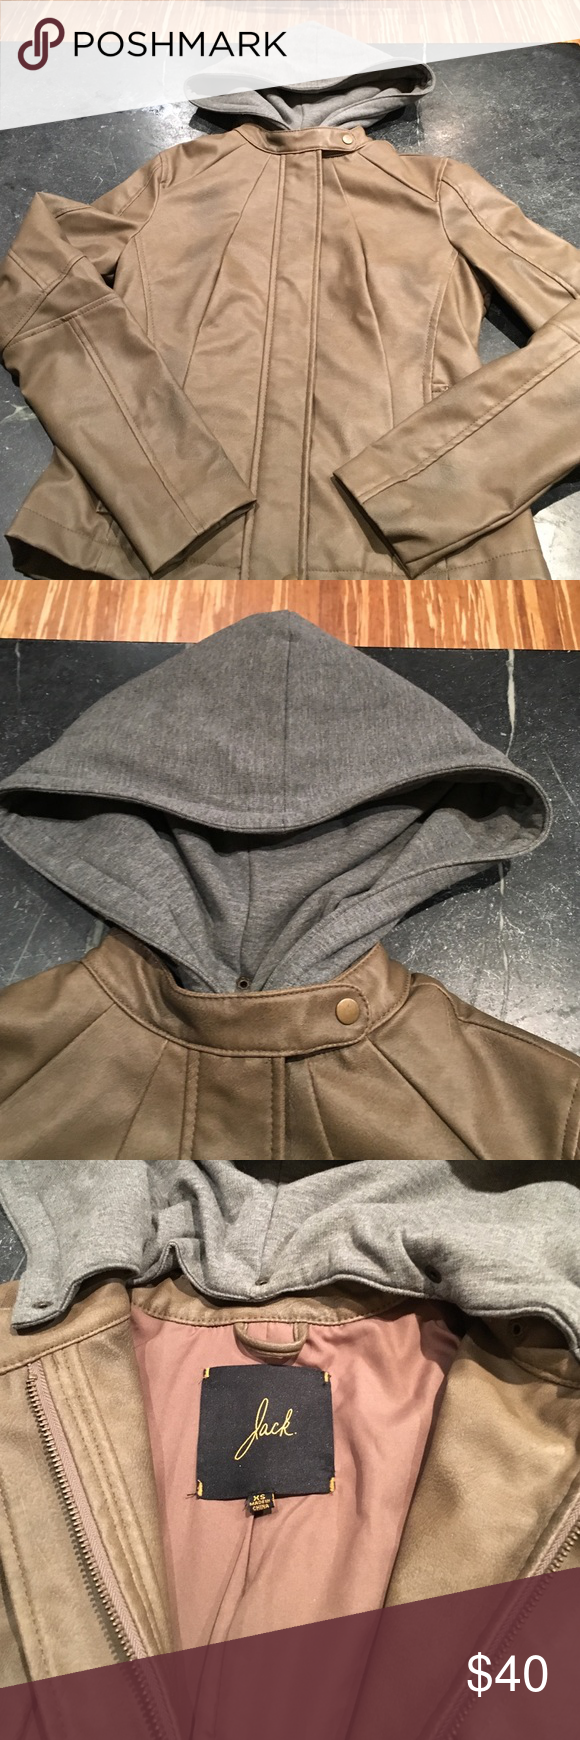 Price ✂️️Faux lather bomber jacket, removable hood In EUC condition!  Faux leather bomber jacket with removable cotton hood in size XS.  Purchased from a super cool, trendy boutique in Seattle!  Worn a few times With no signs of wear!  Super soft and trendy! Jack and Jones Jackets & Coats